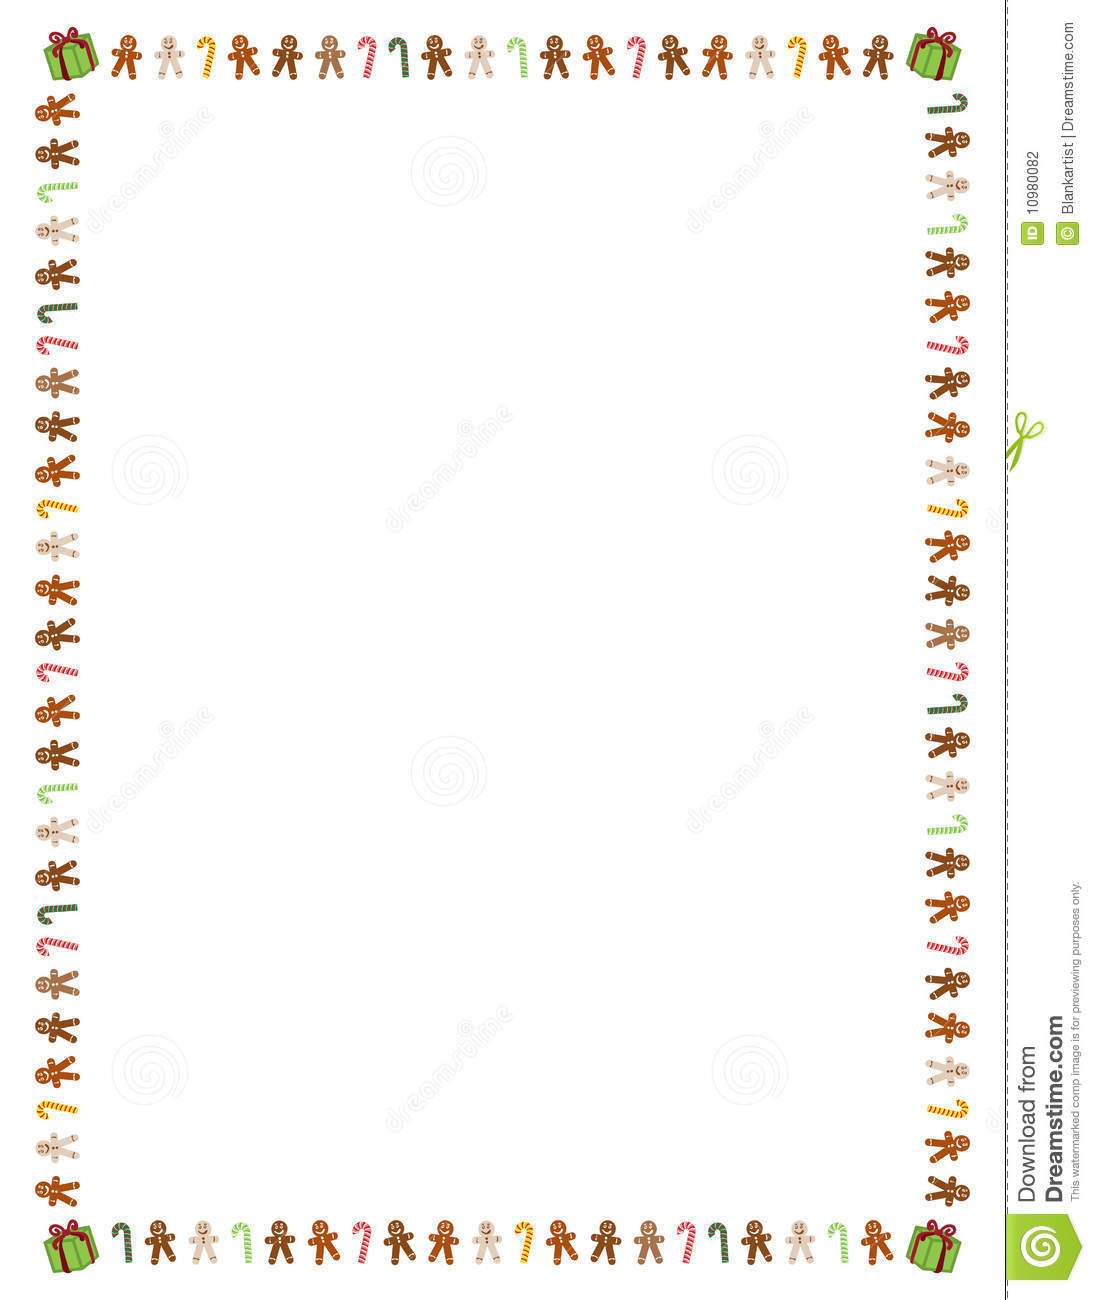 Gingerbread house border clipart 7 » Clipart Portal.